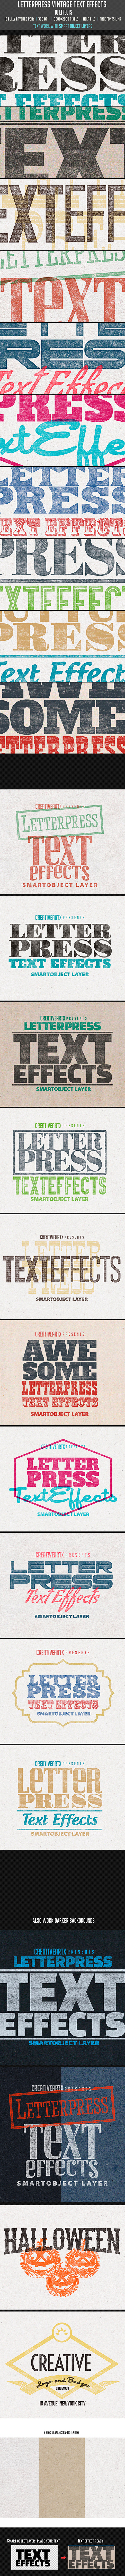 Letterpress Vintage Text Effects - Text Effects Actions